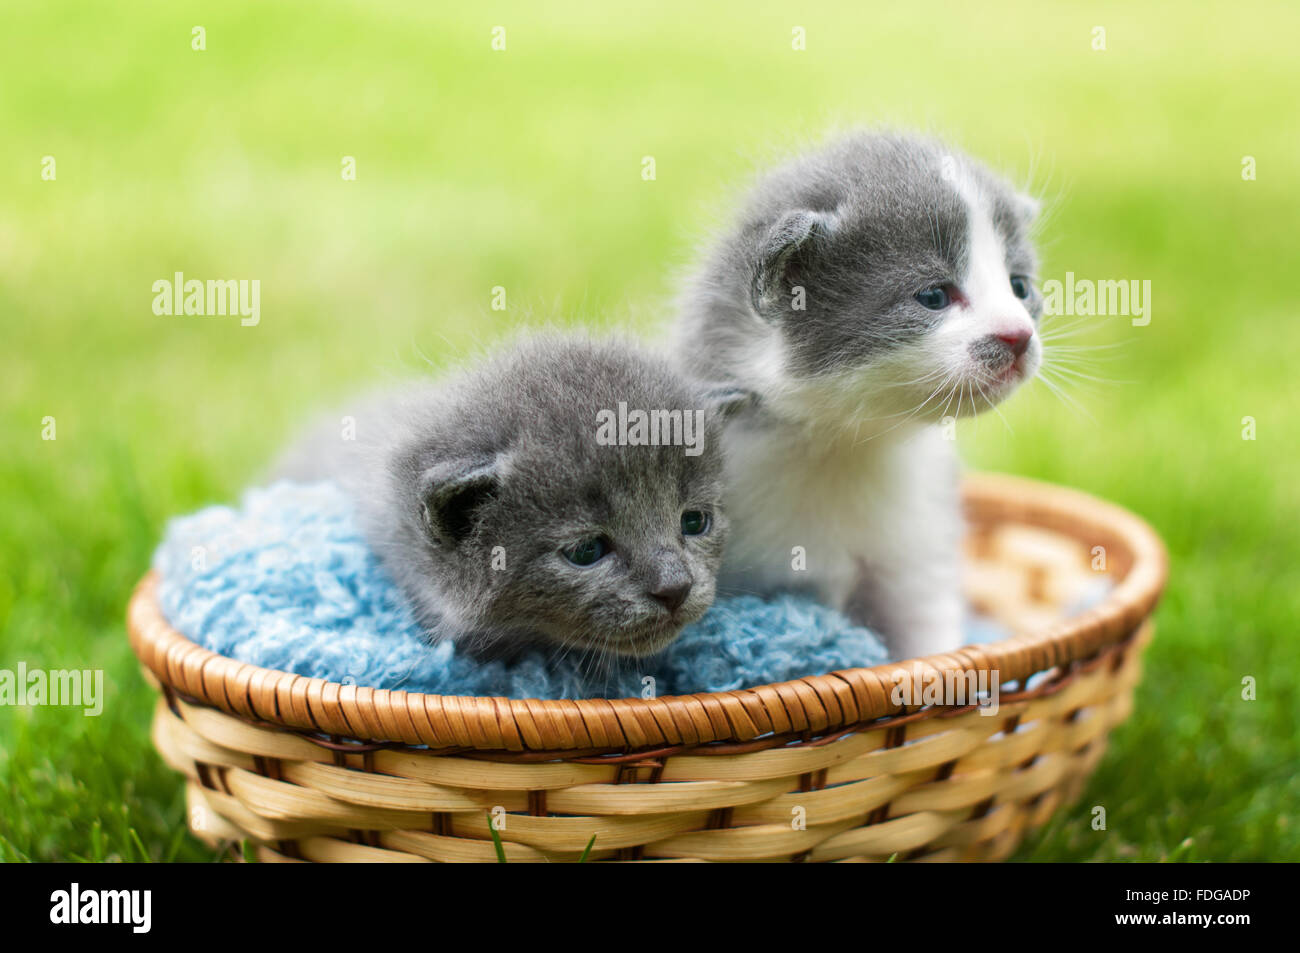 Two gray and white kittens in a basket Stock Photo